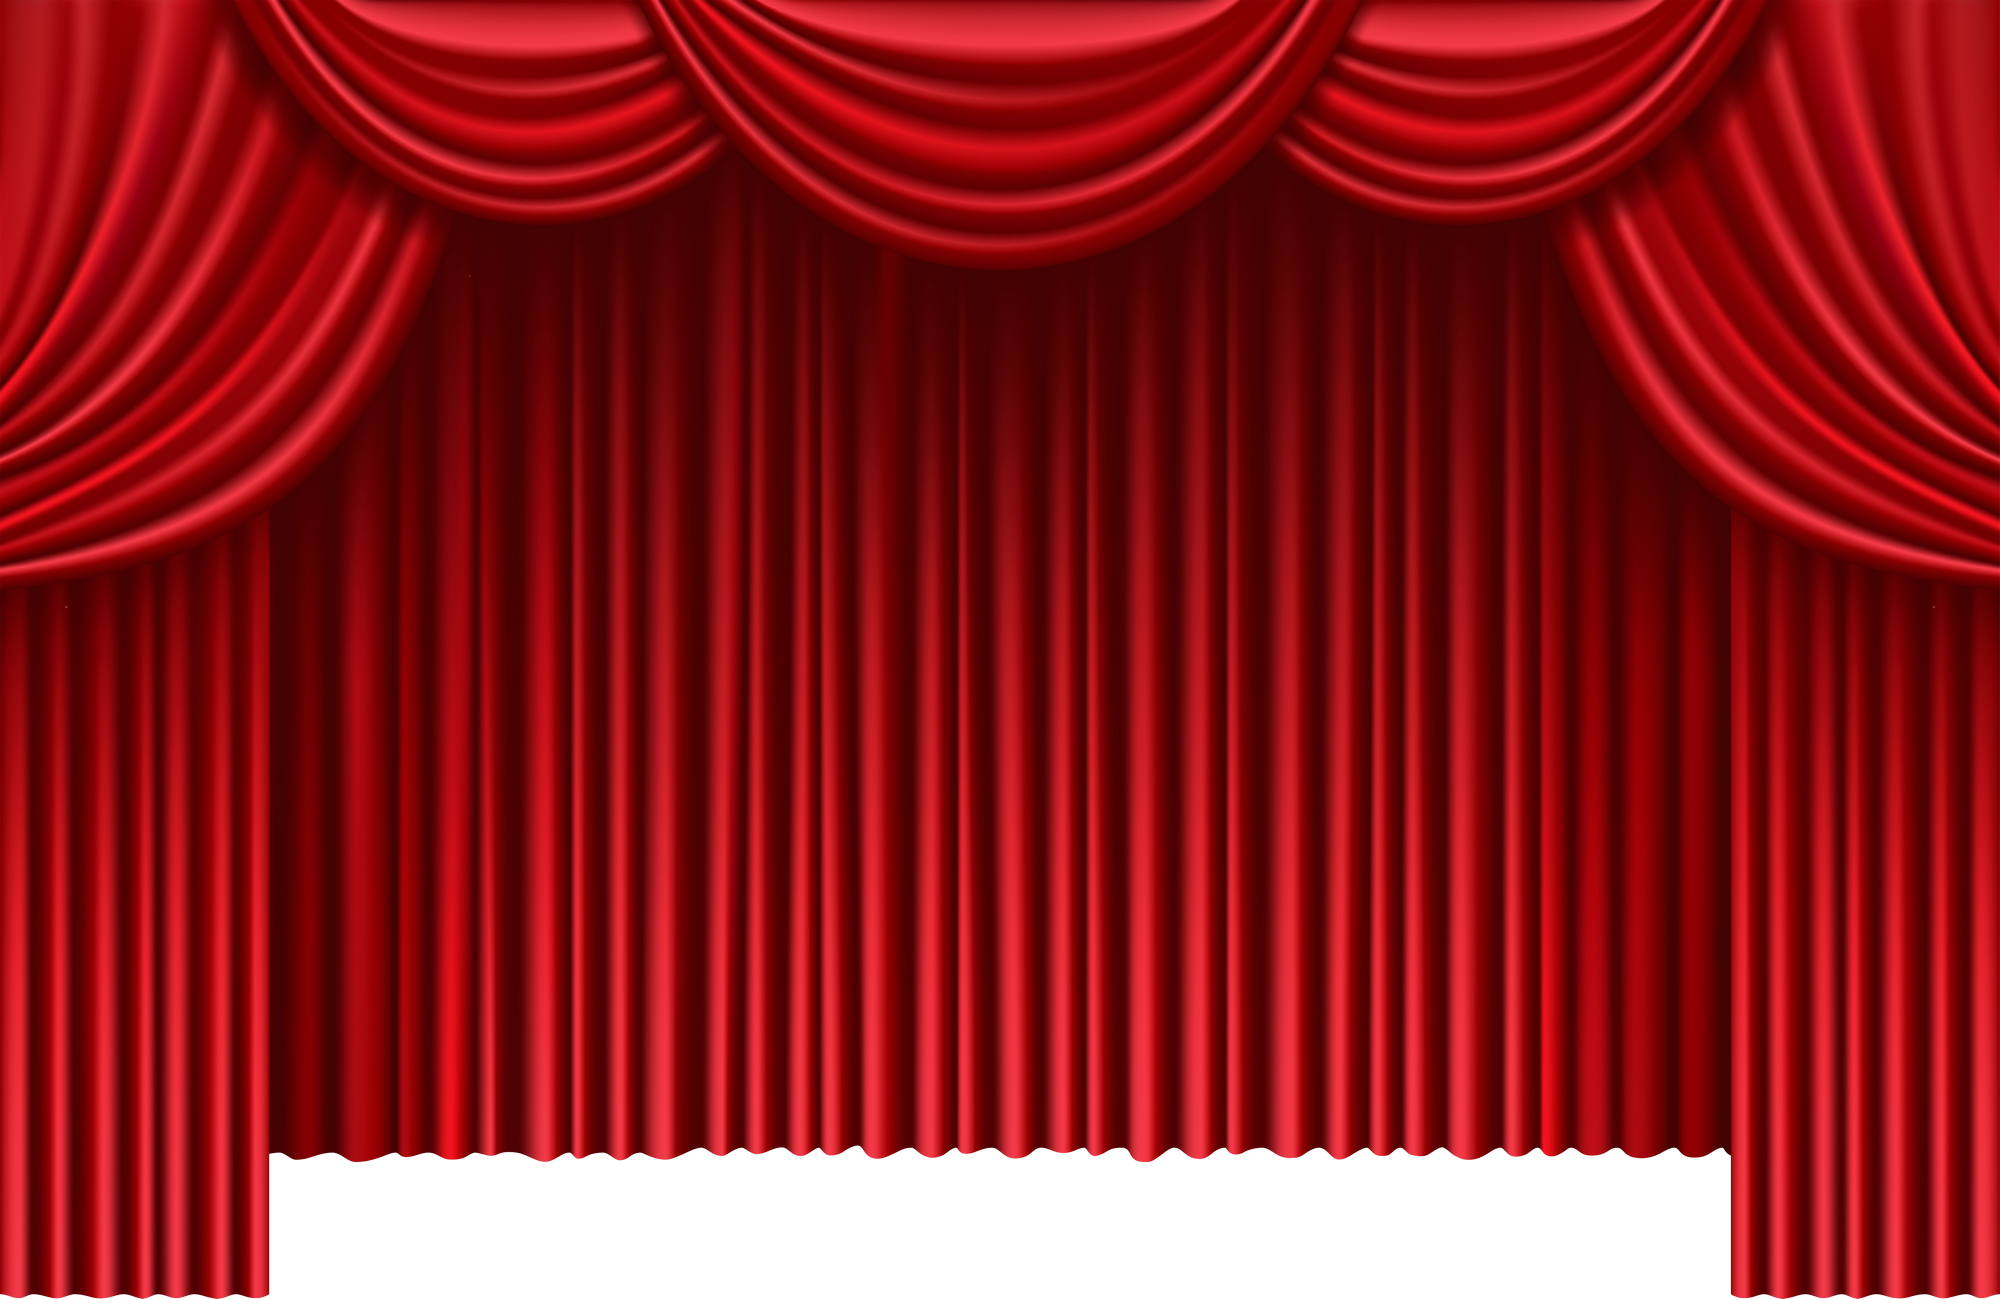 Curtains Png Image Theatre Curtains Curtains Stage Curtains